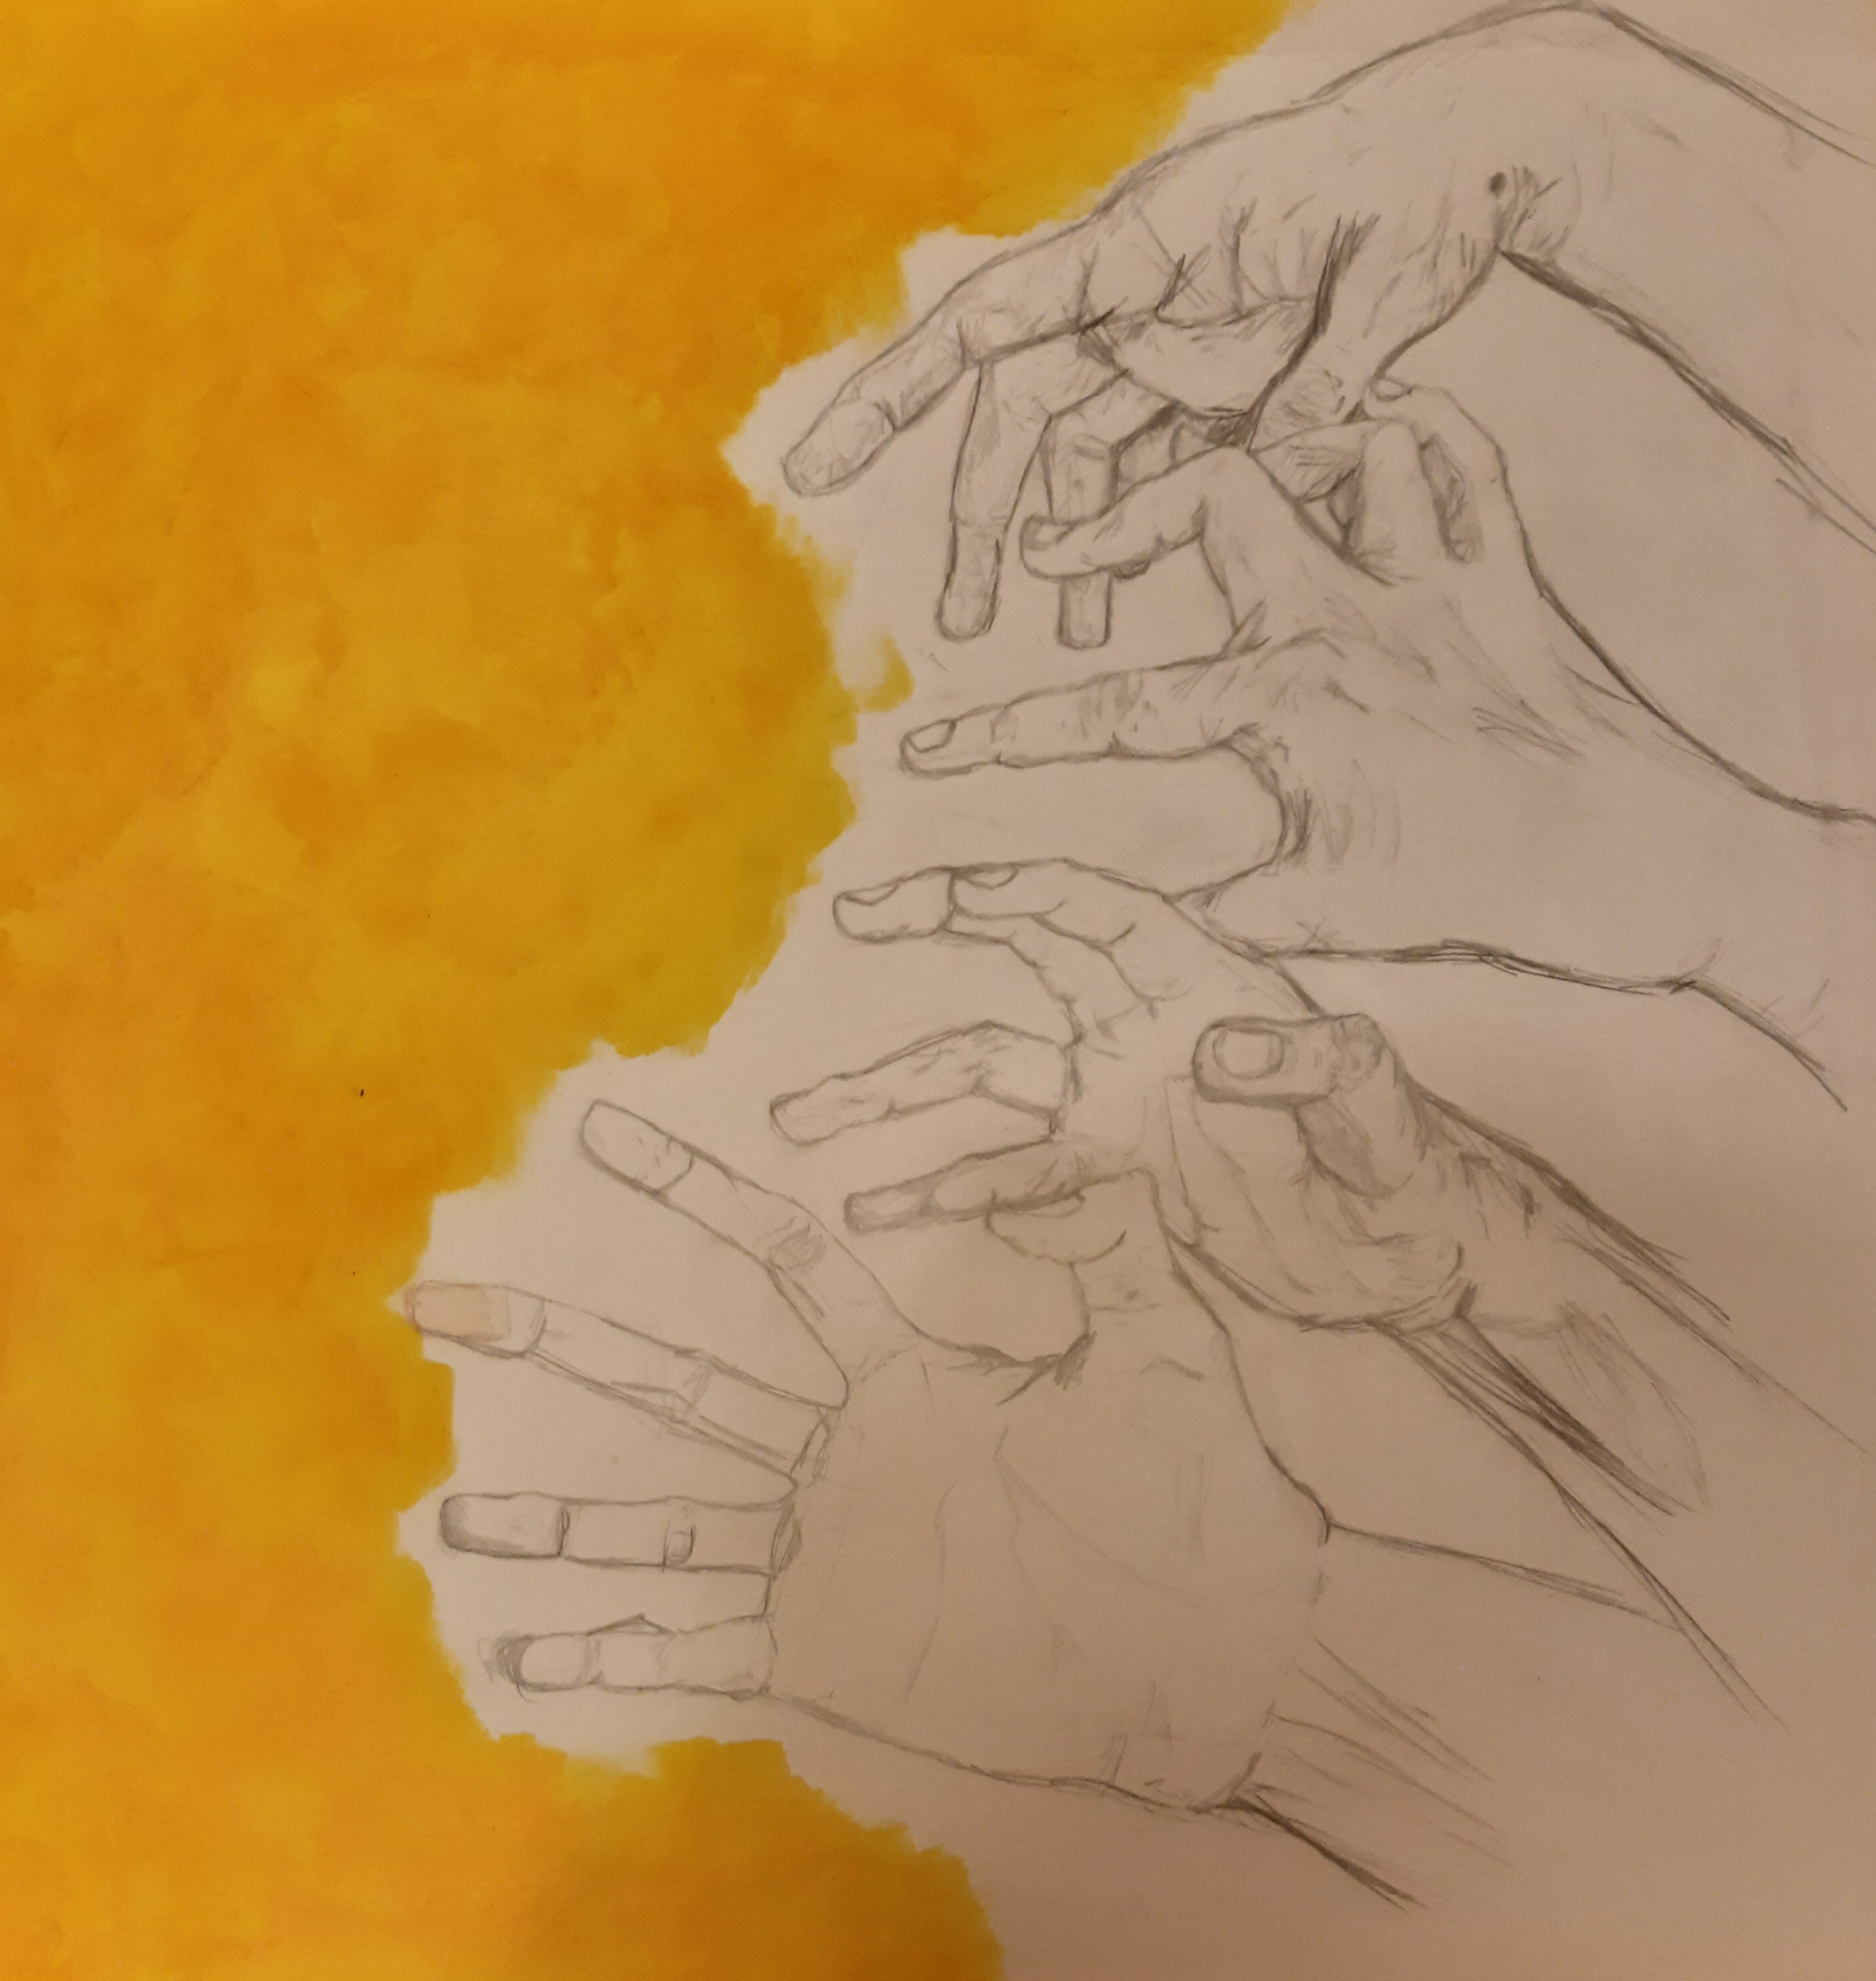 White hands in pencil reaching towards a yellow background